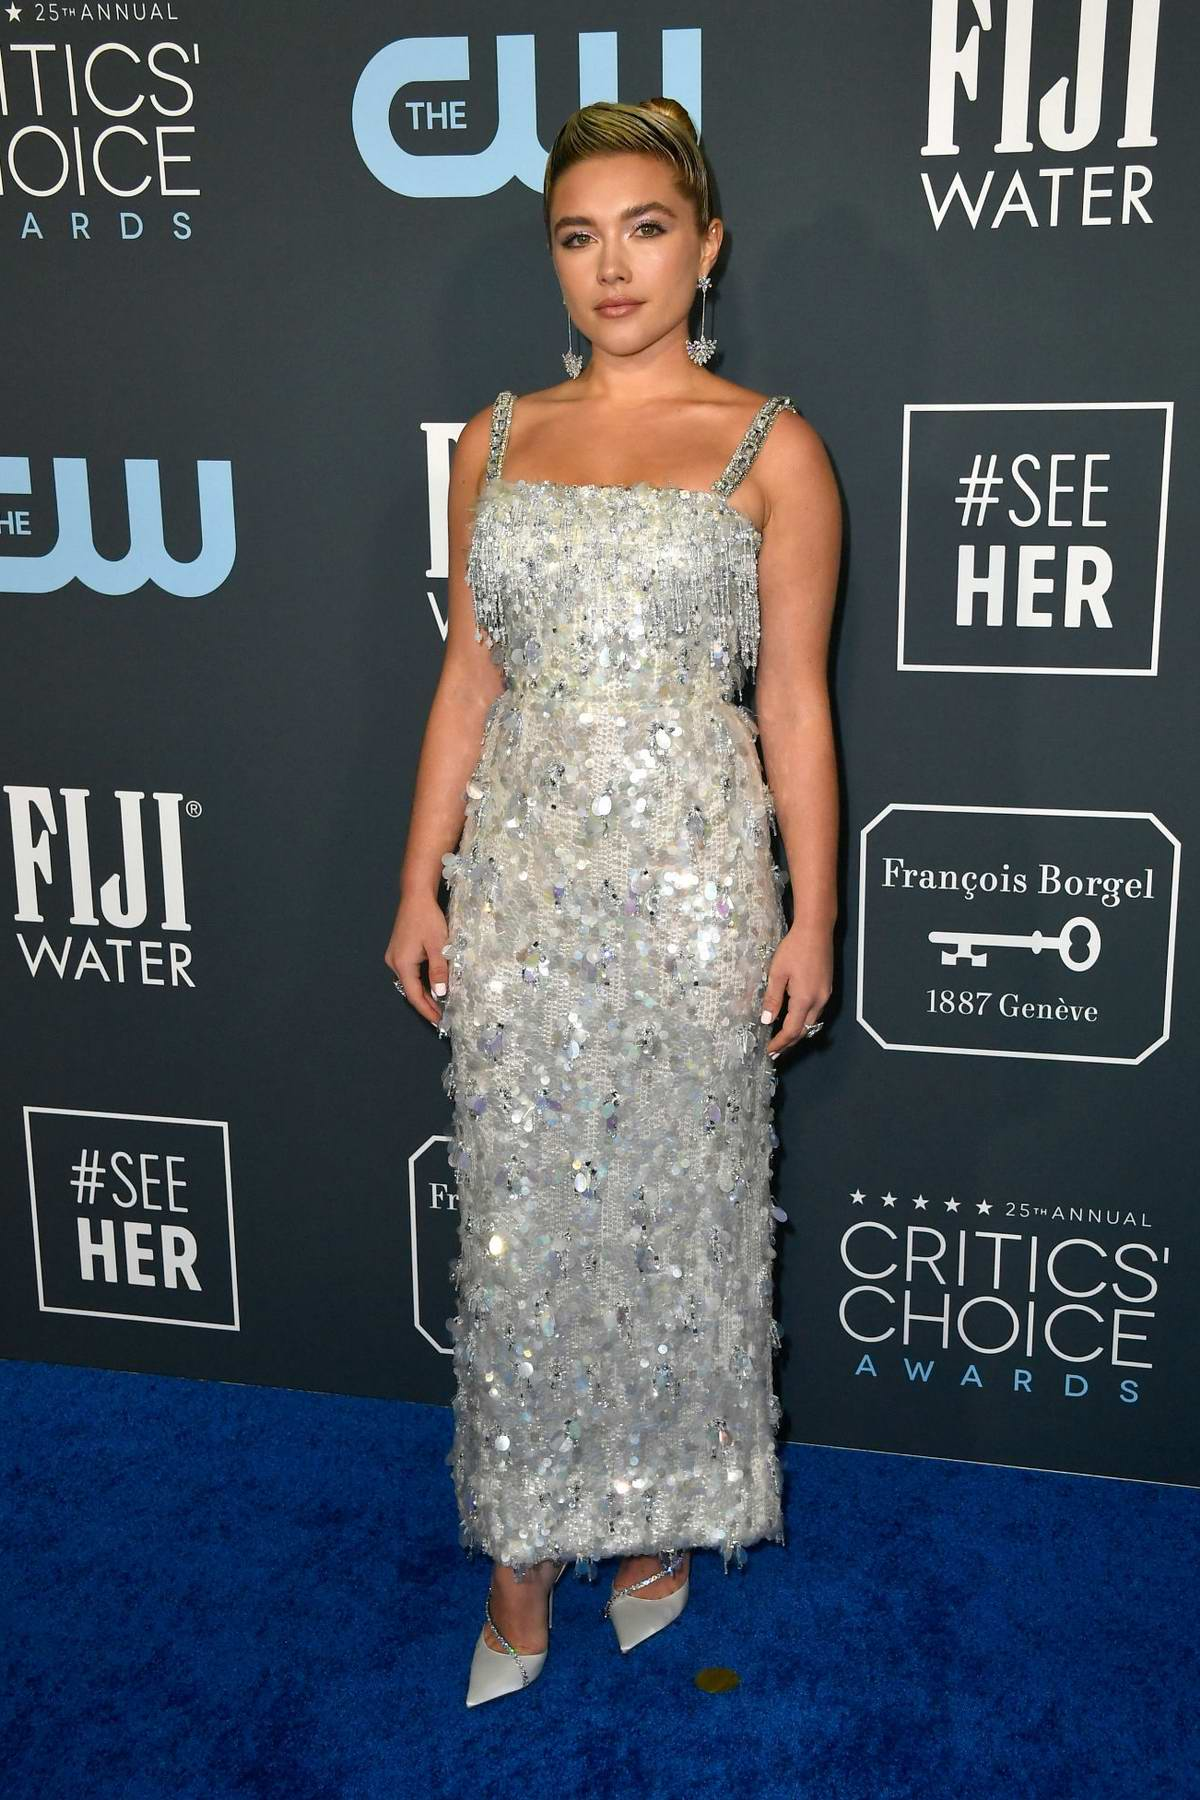 Florence Pugh attends the 25th Annual Critics' Choice Awards at Barker Hangar in Santa Monica, California